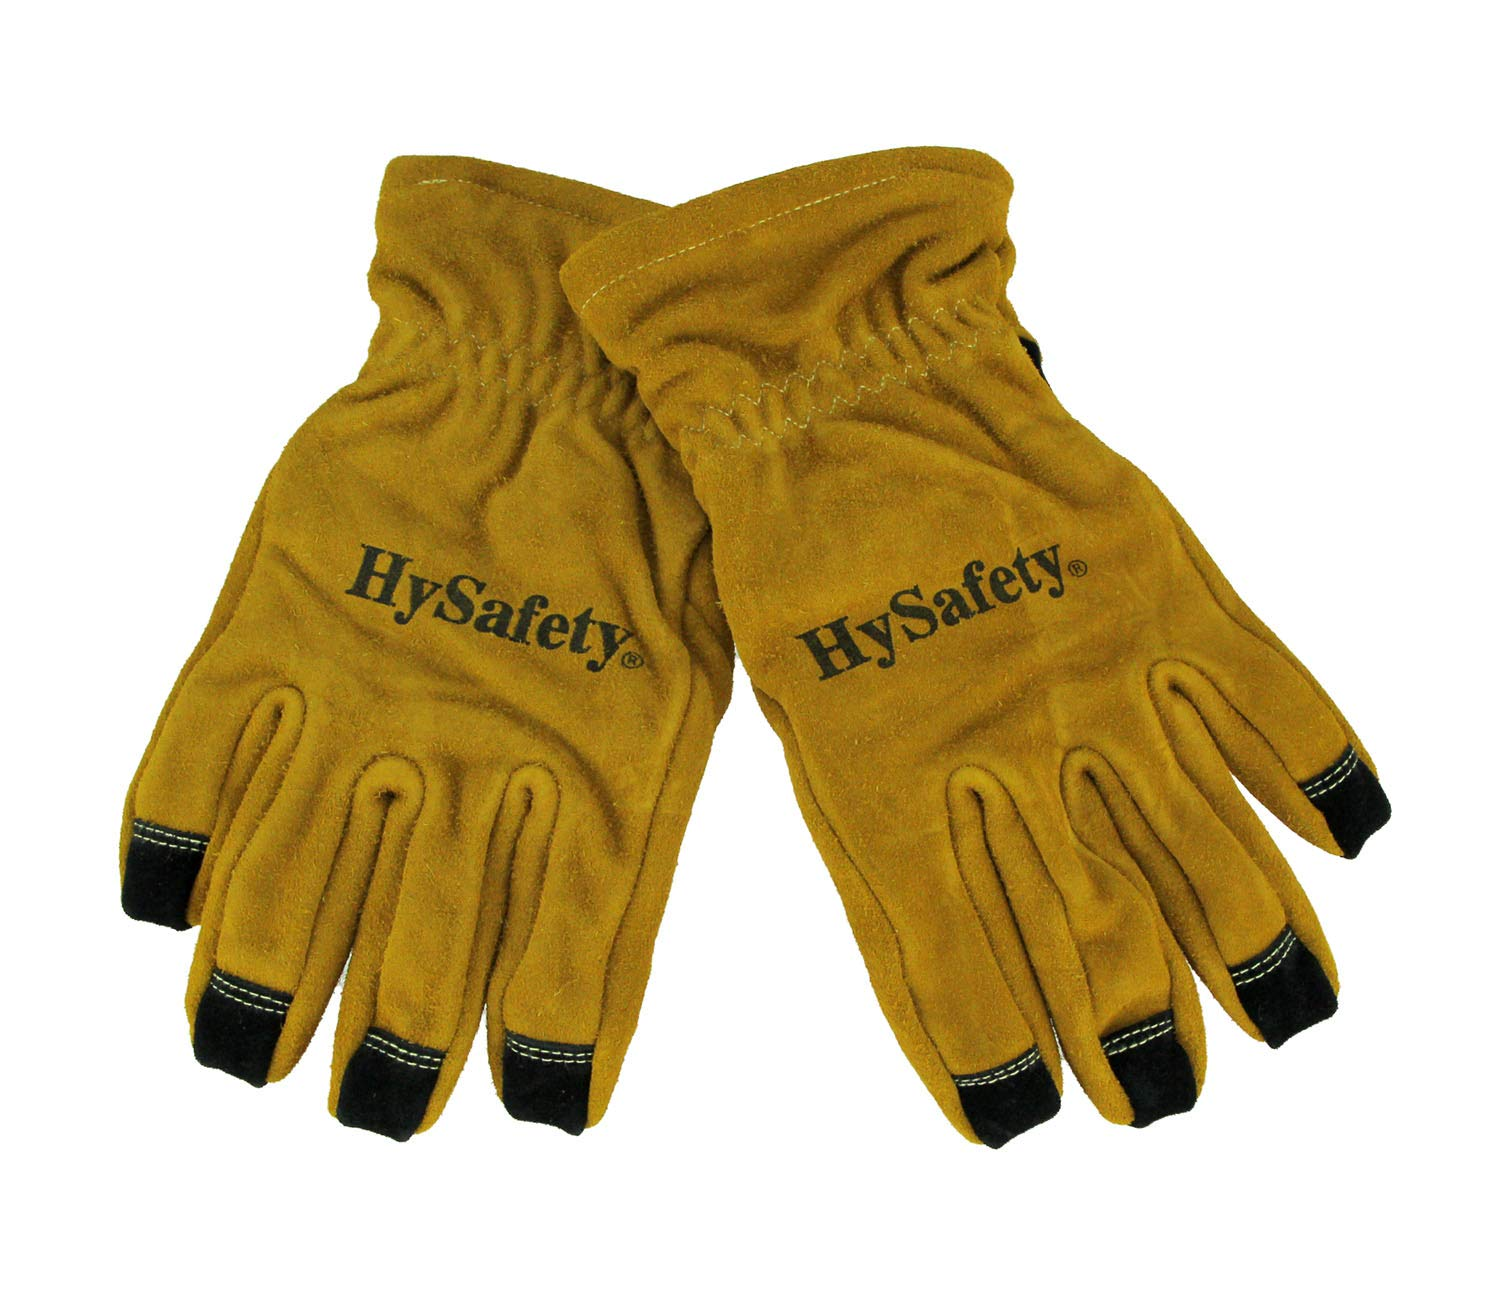 Hysafety Cowhide Leather Reinforced Palm Structural Firefighter Gloves, Medium by HySafety